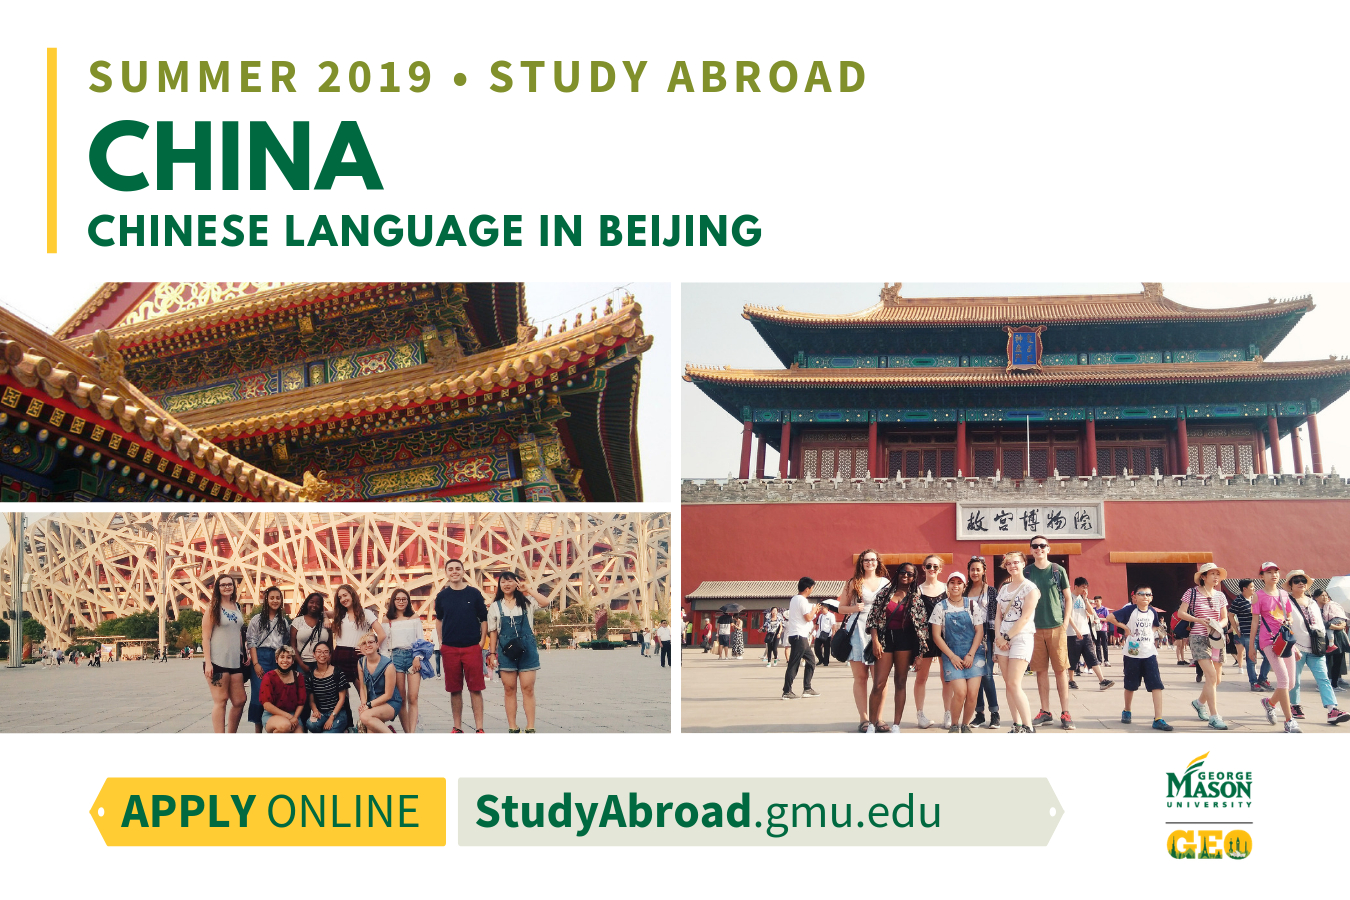 Information regarding China Language is as follows Start date (when you would like your content to be posted) is January 09 2019 and End Date  (when you would like your content to be removed from the screens) is March 10 2019 and Name is Achim Loch and Email is aloch@gmu.edu and File is Browse and Name of Ad/Event is China Language and Group Name is Global Education Office and File Name is SU19_China-Language_comp.jpg and Panel for your ad to be displayed is Main and Affiliation is Mason Department and